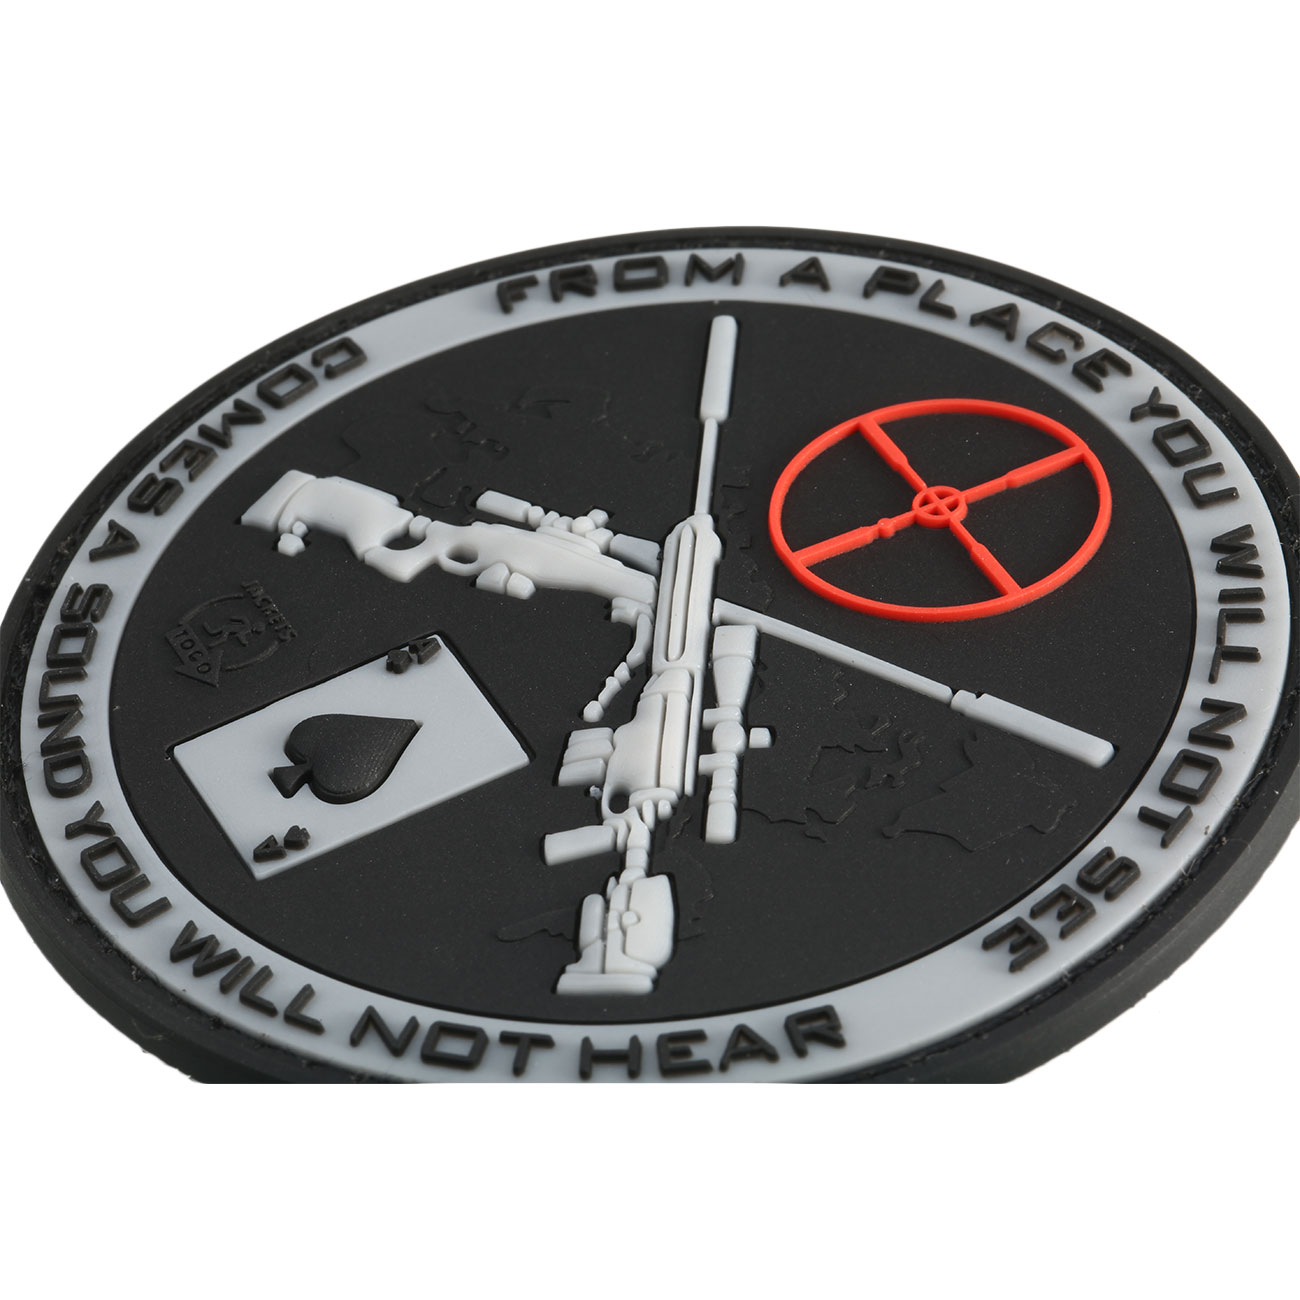 JTG 3D Rubber Patch Sniper swat 1